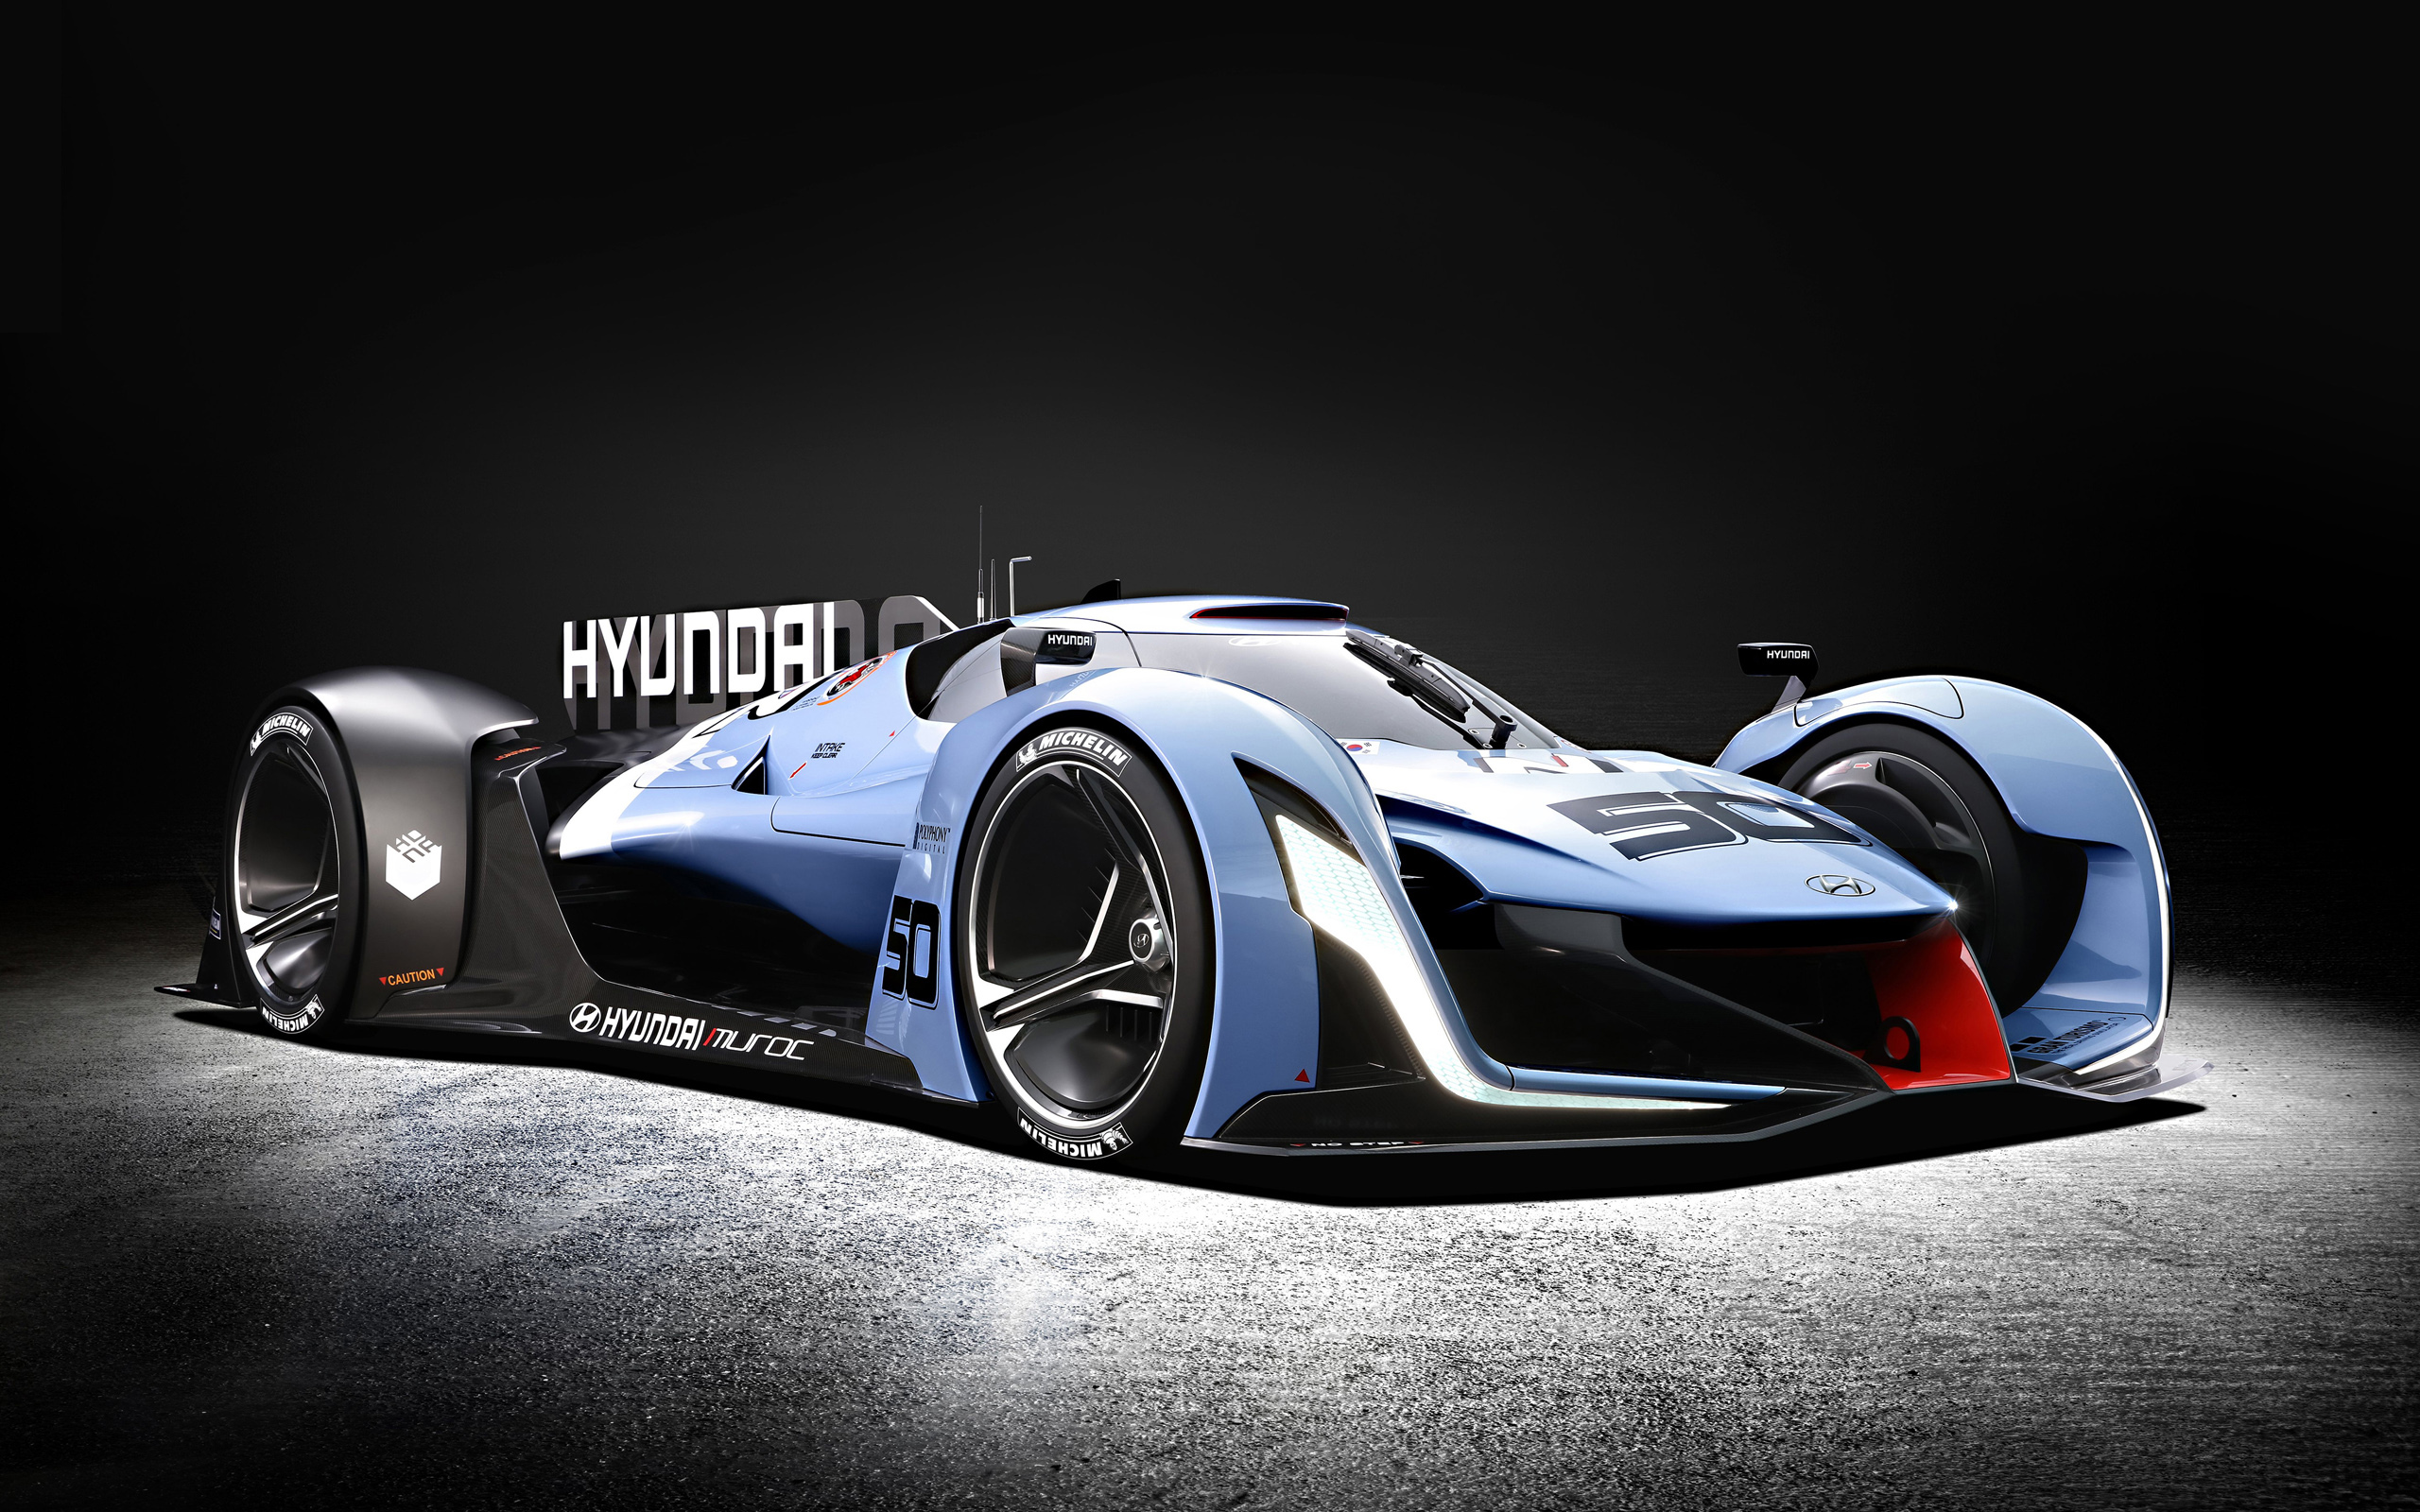 2015 Hyundai N 2025 Vision Gran Turismo 3 Wallpaper Hd Car